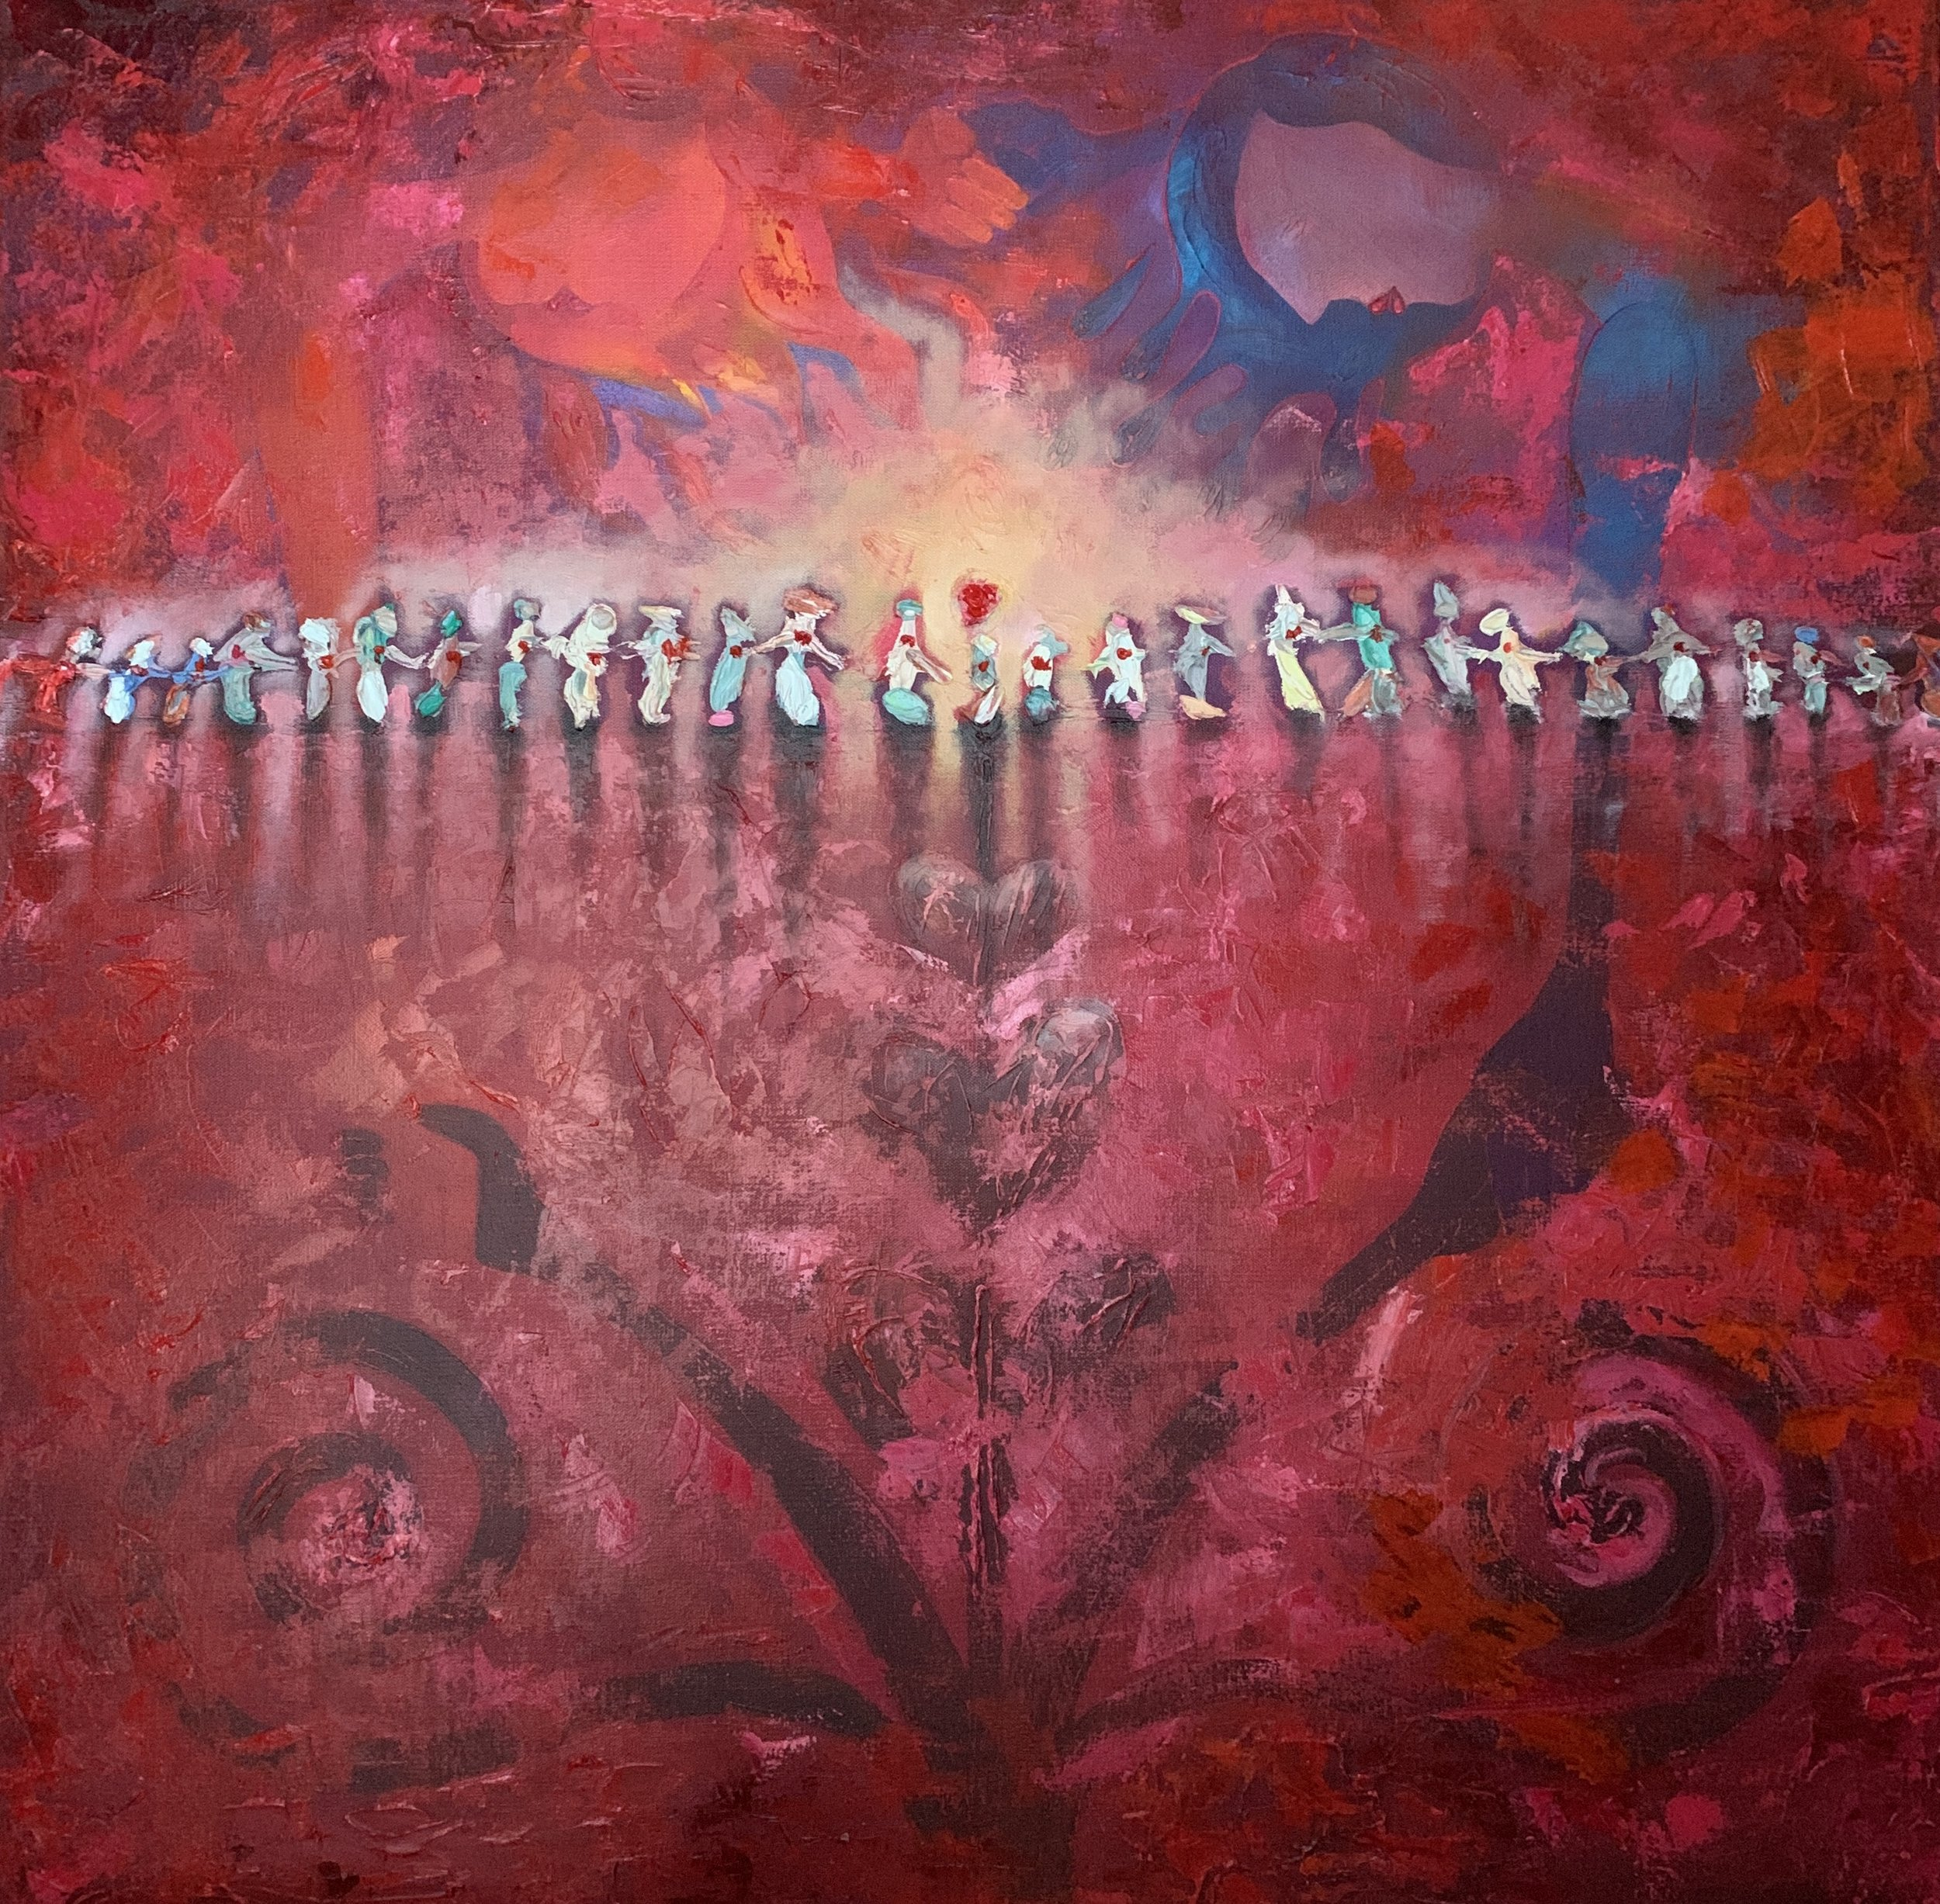 Guardian Angels of Love, 2019, Oil on Canvas, 36 x 36 inches, $1,950